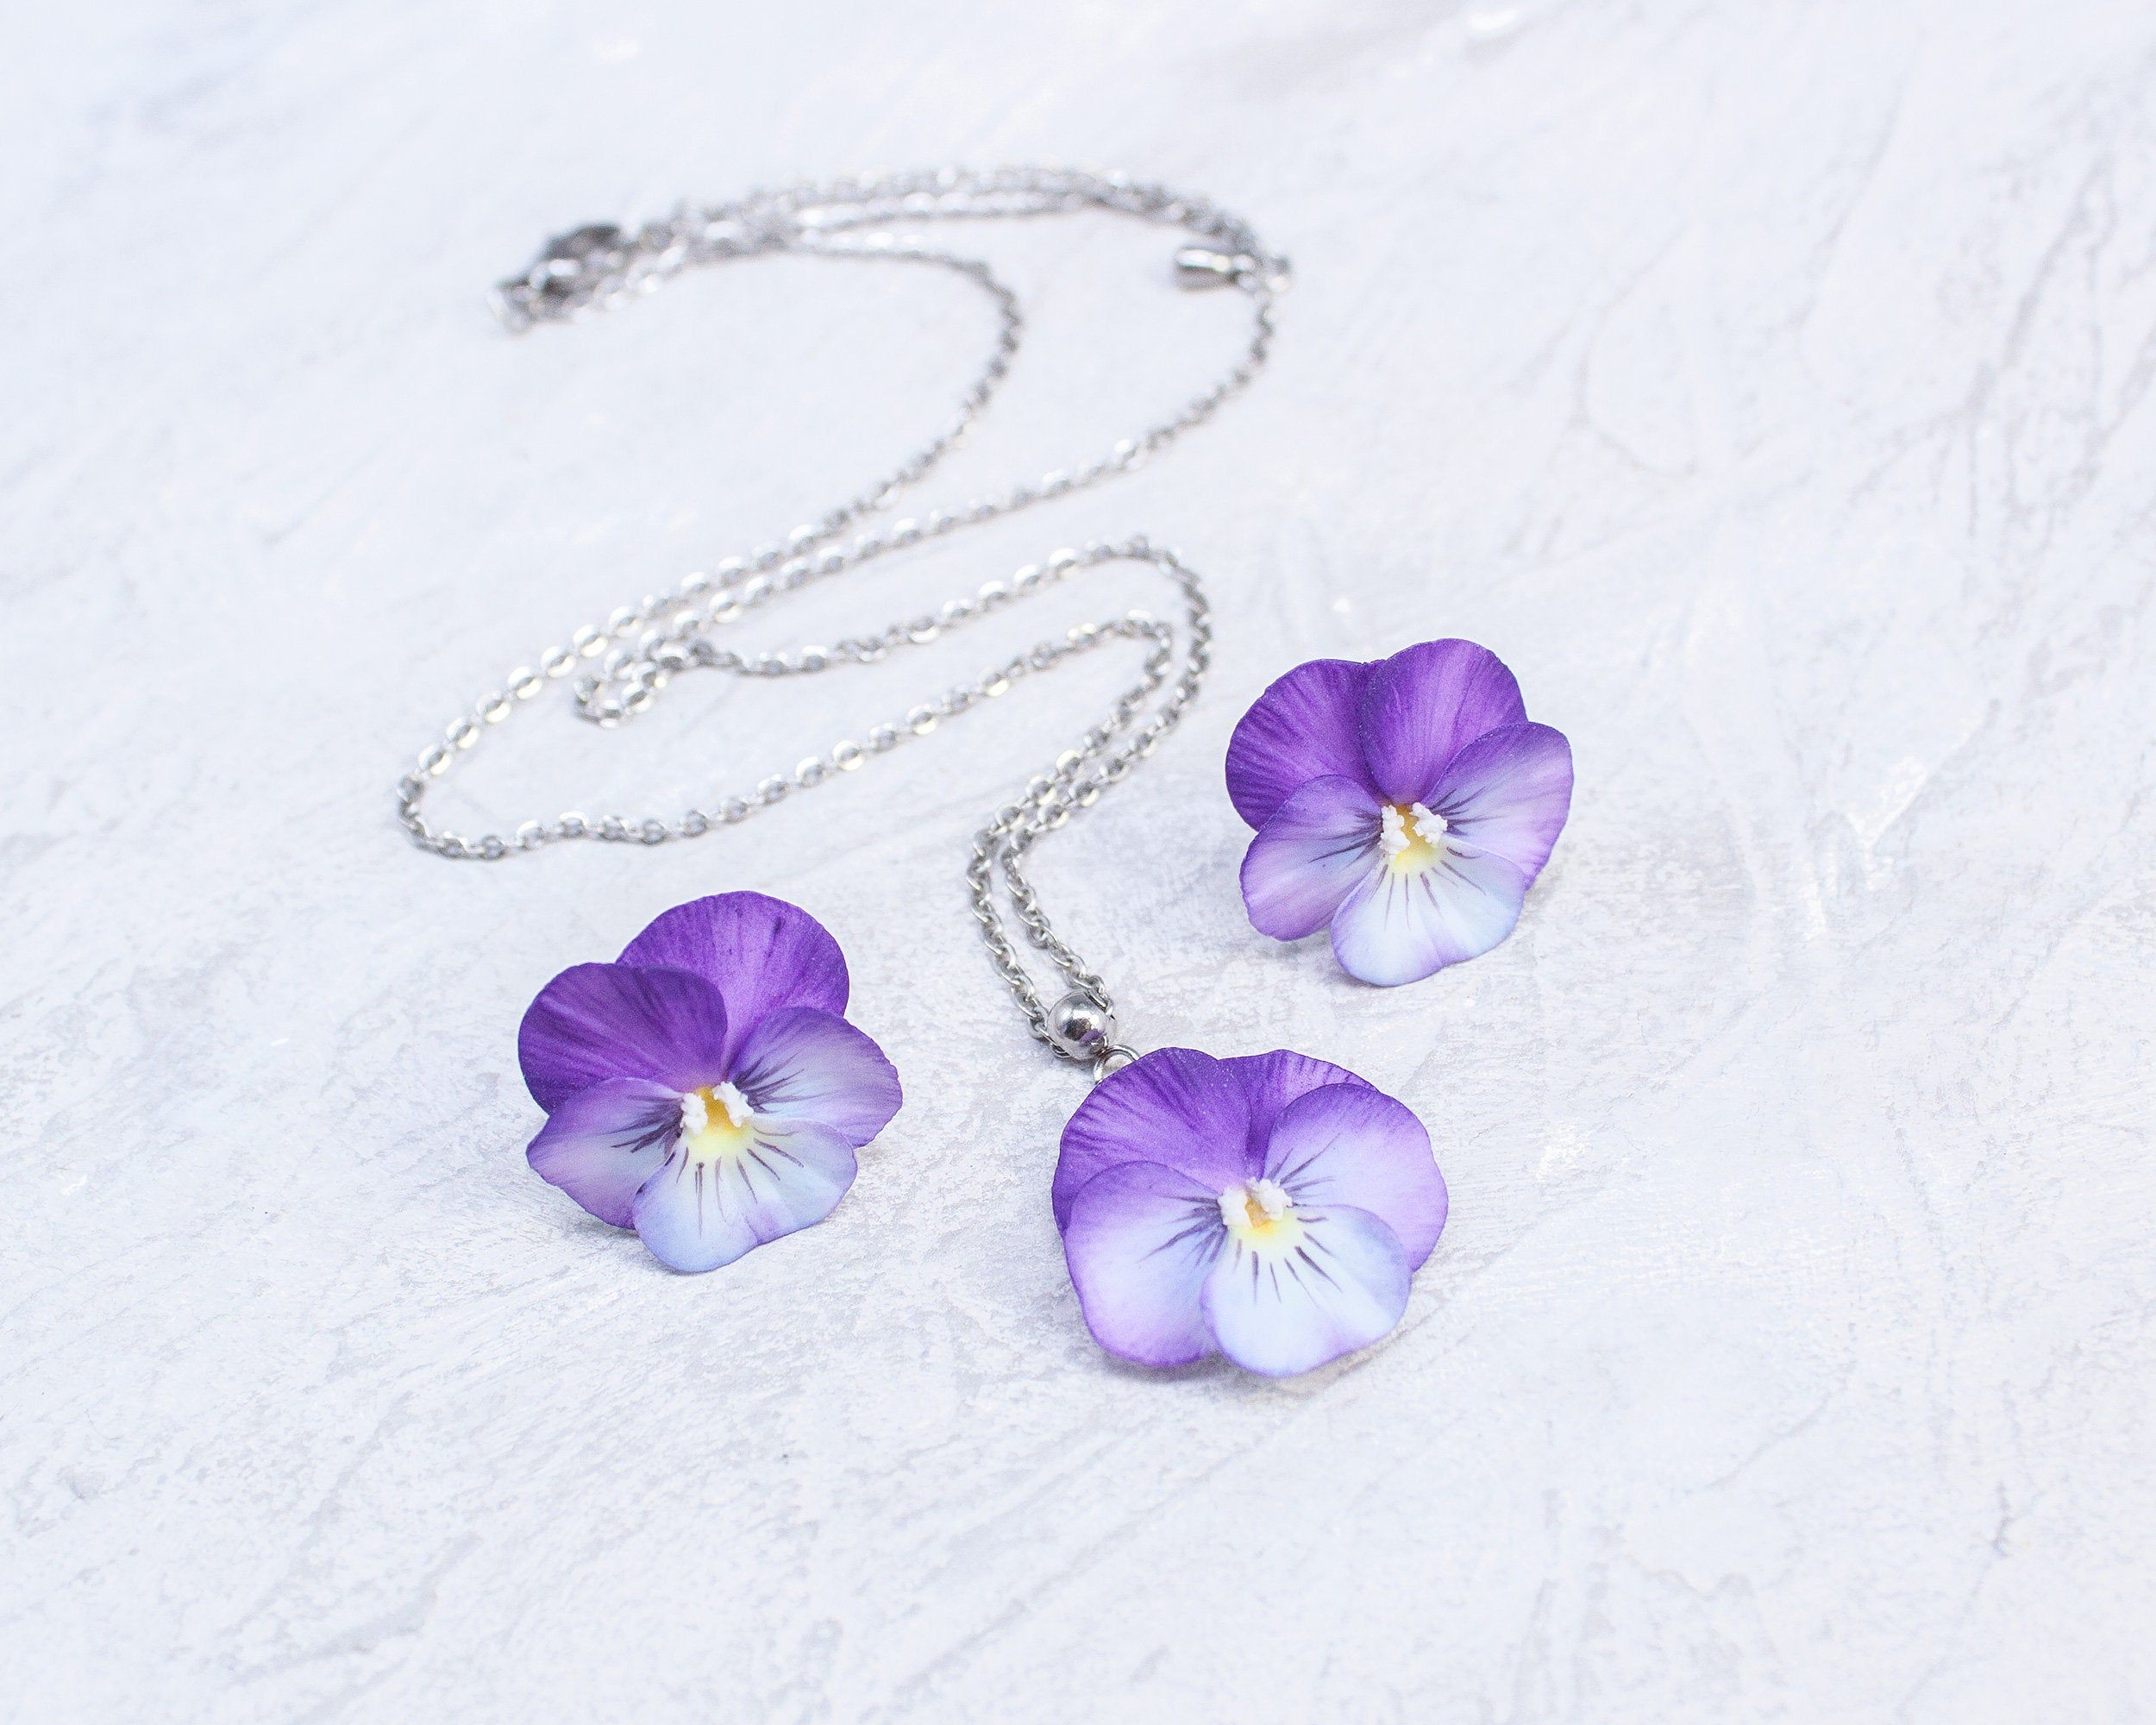 Set Of Jewelry With Pansies Stud Earrings And Pendant Etsy In 2020 Stud Earrings Floral Jewellery Jewelery